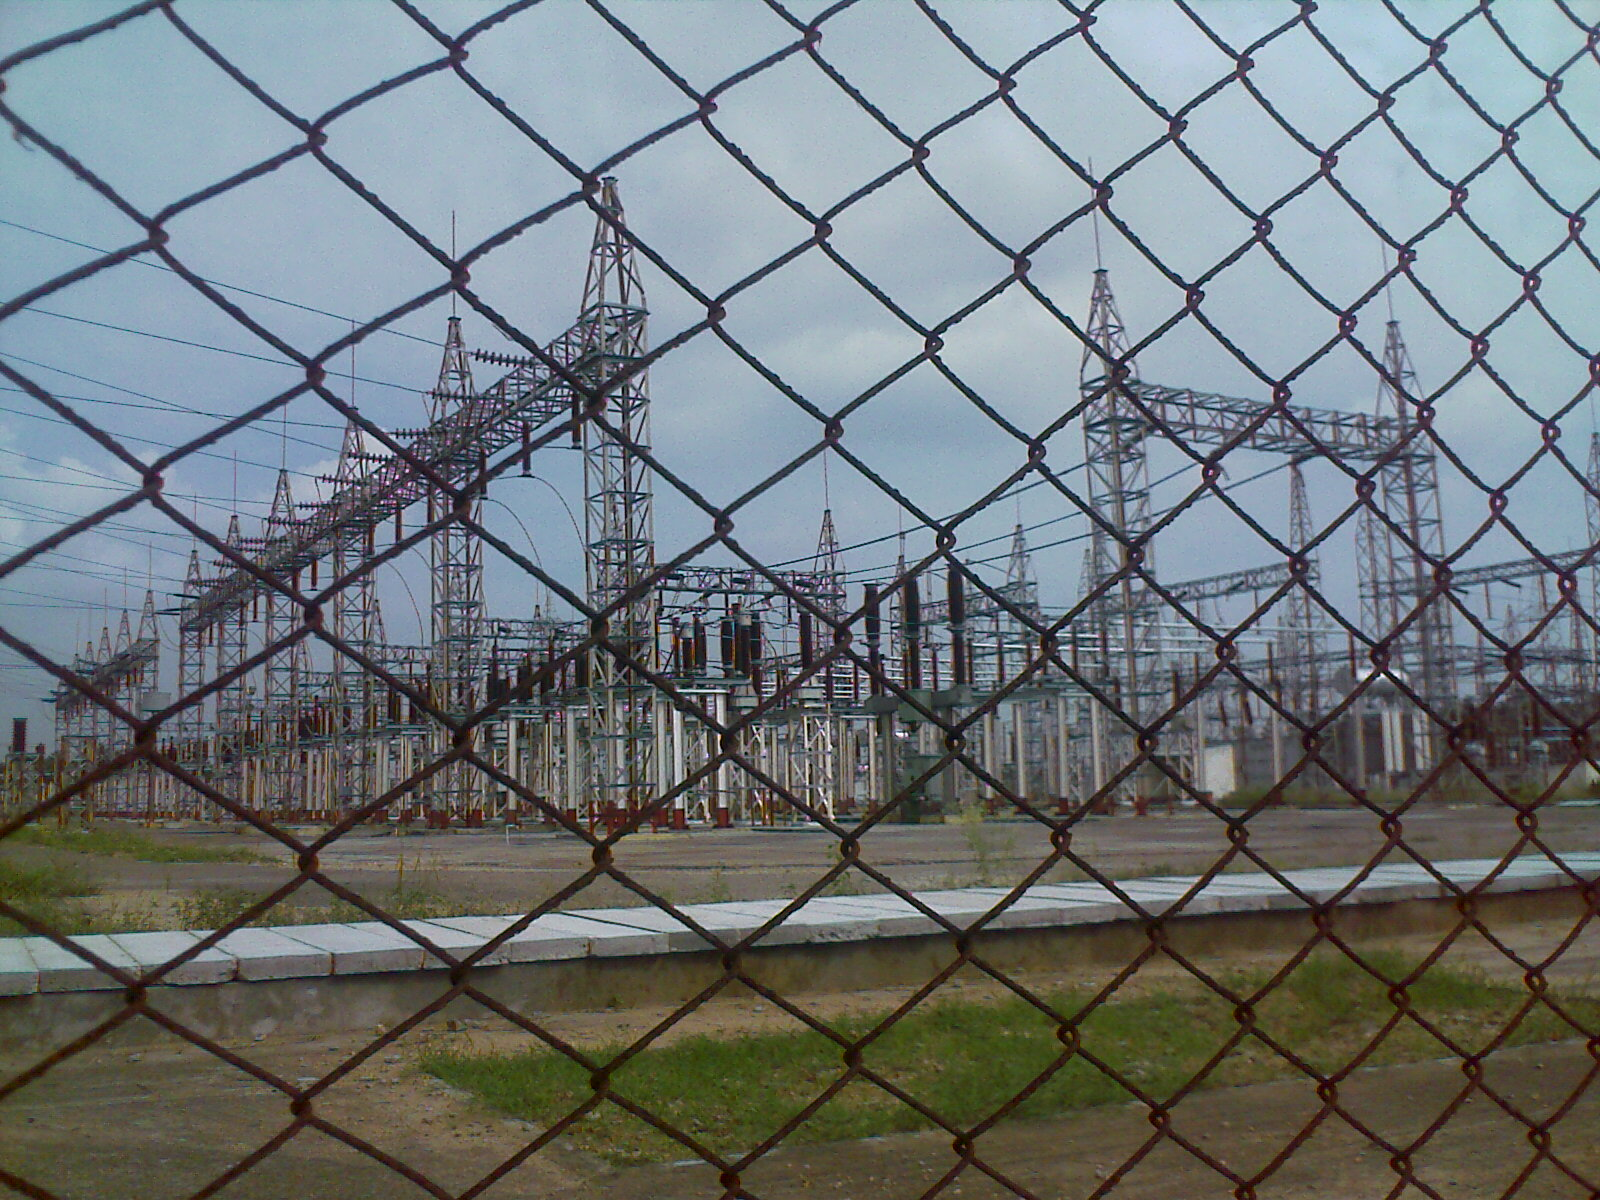 An electrical distribution centre through the fence